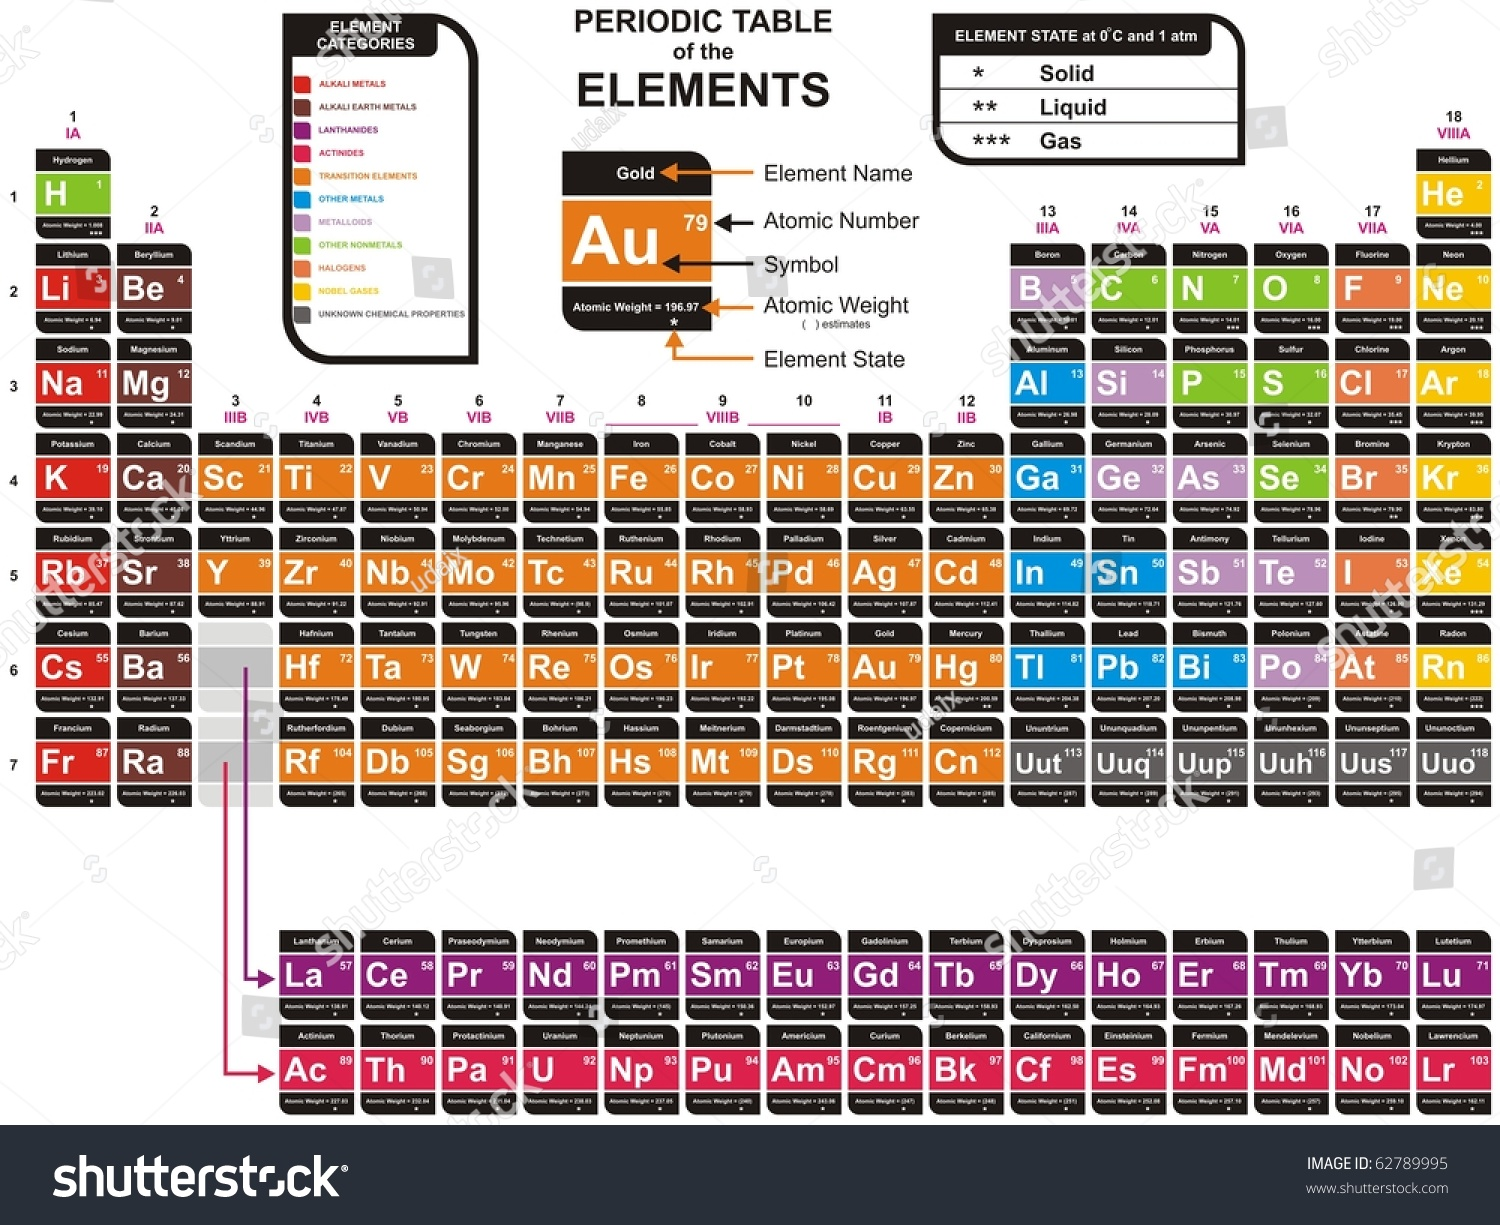 Royalty free vector colorful periodic table of the 62789995 vector colorful periodic table of the chemical elements including element name atomic number atomic weight element symbol also element categories gamestrikefo Image collections